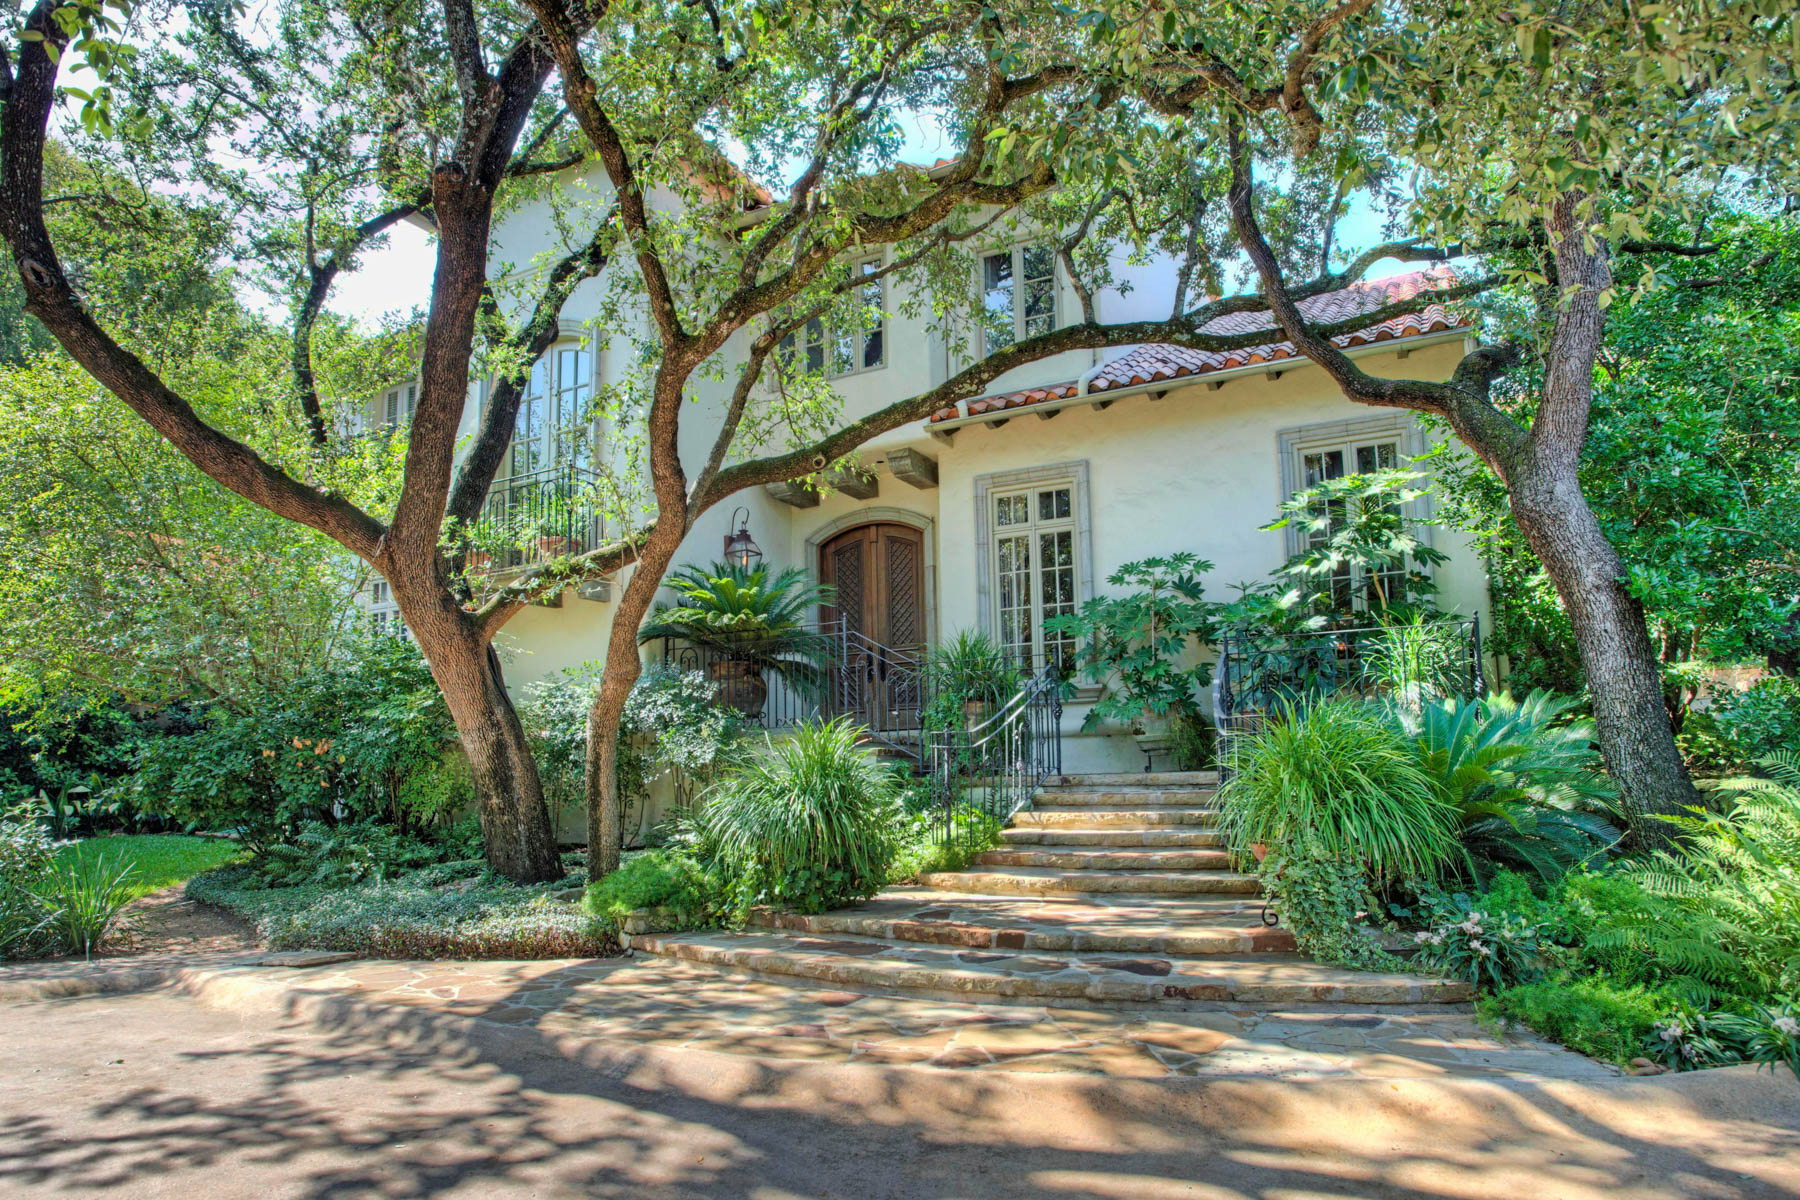 Single Family Home for Sale at Magnificent Estate in Olmos Park 829 Contour Dr San Antonio, Texas 78212 United States